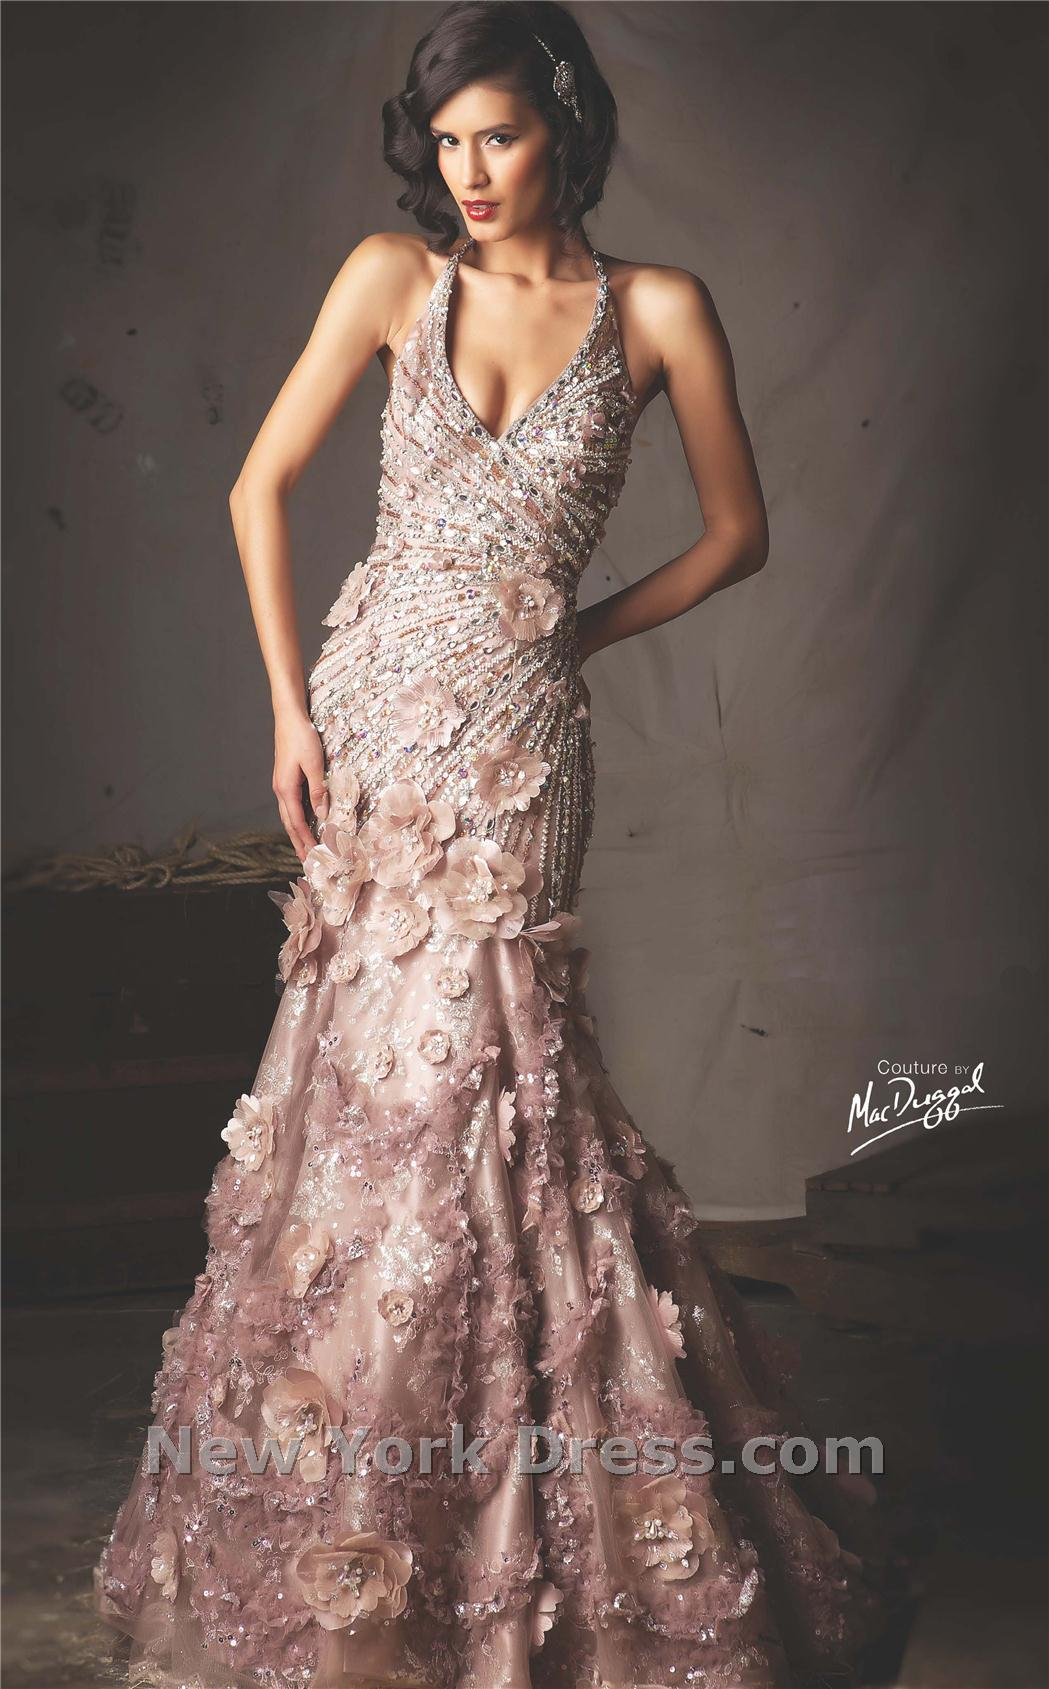 Evening Gowns Tag - Page 6 of 13 - Fashion Diva Design